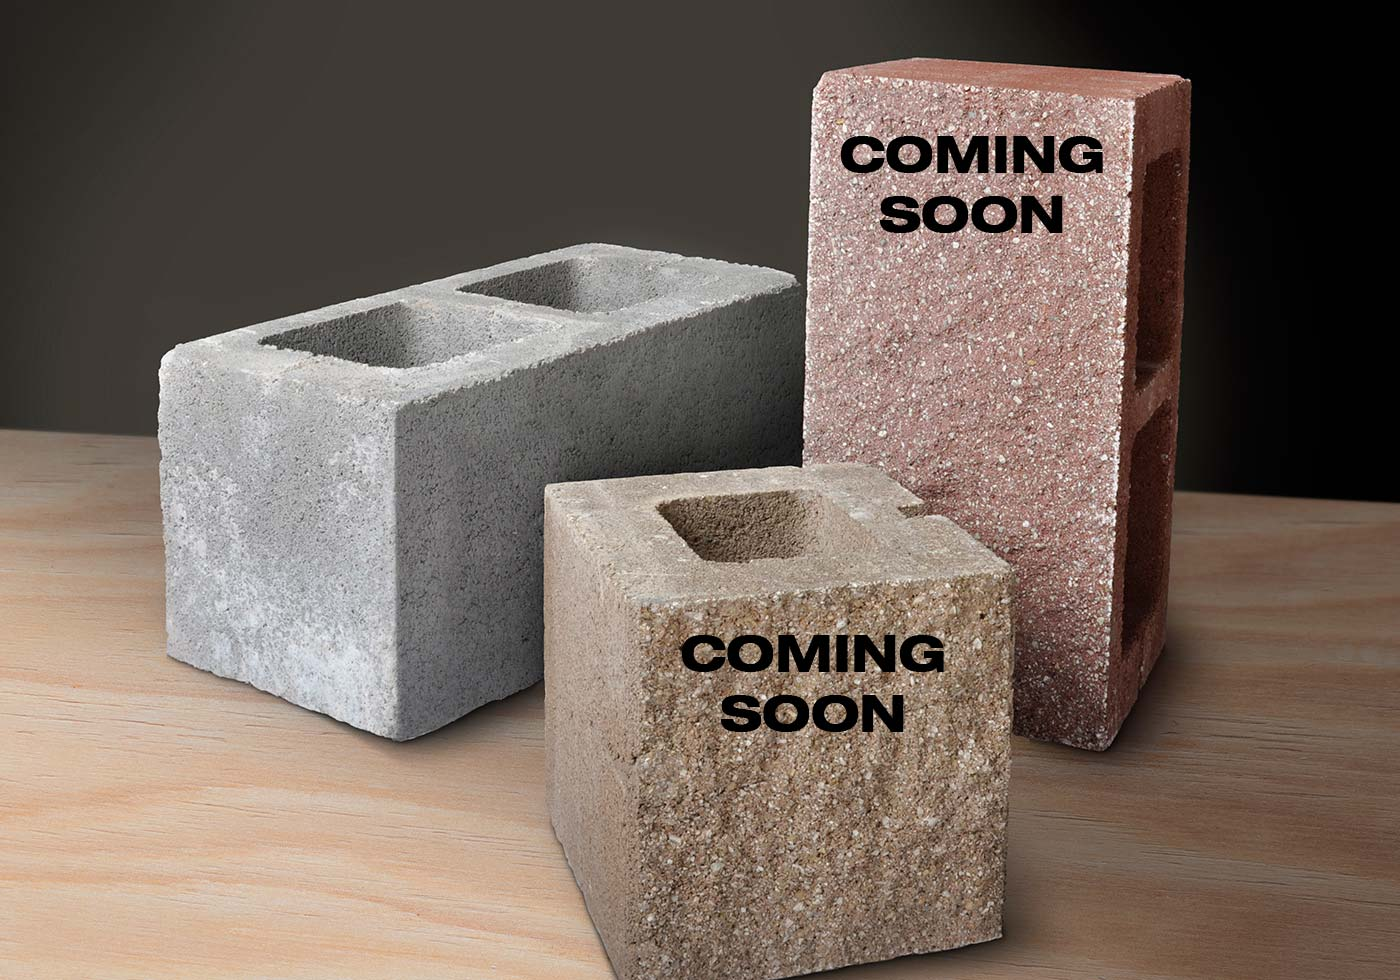 Concrete Masonry Units or Concrete Blocks or Cinder Blocks